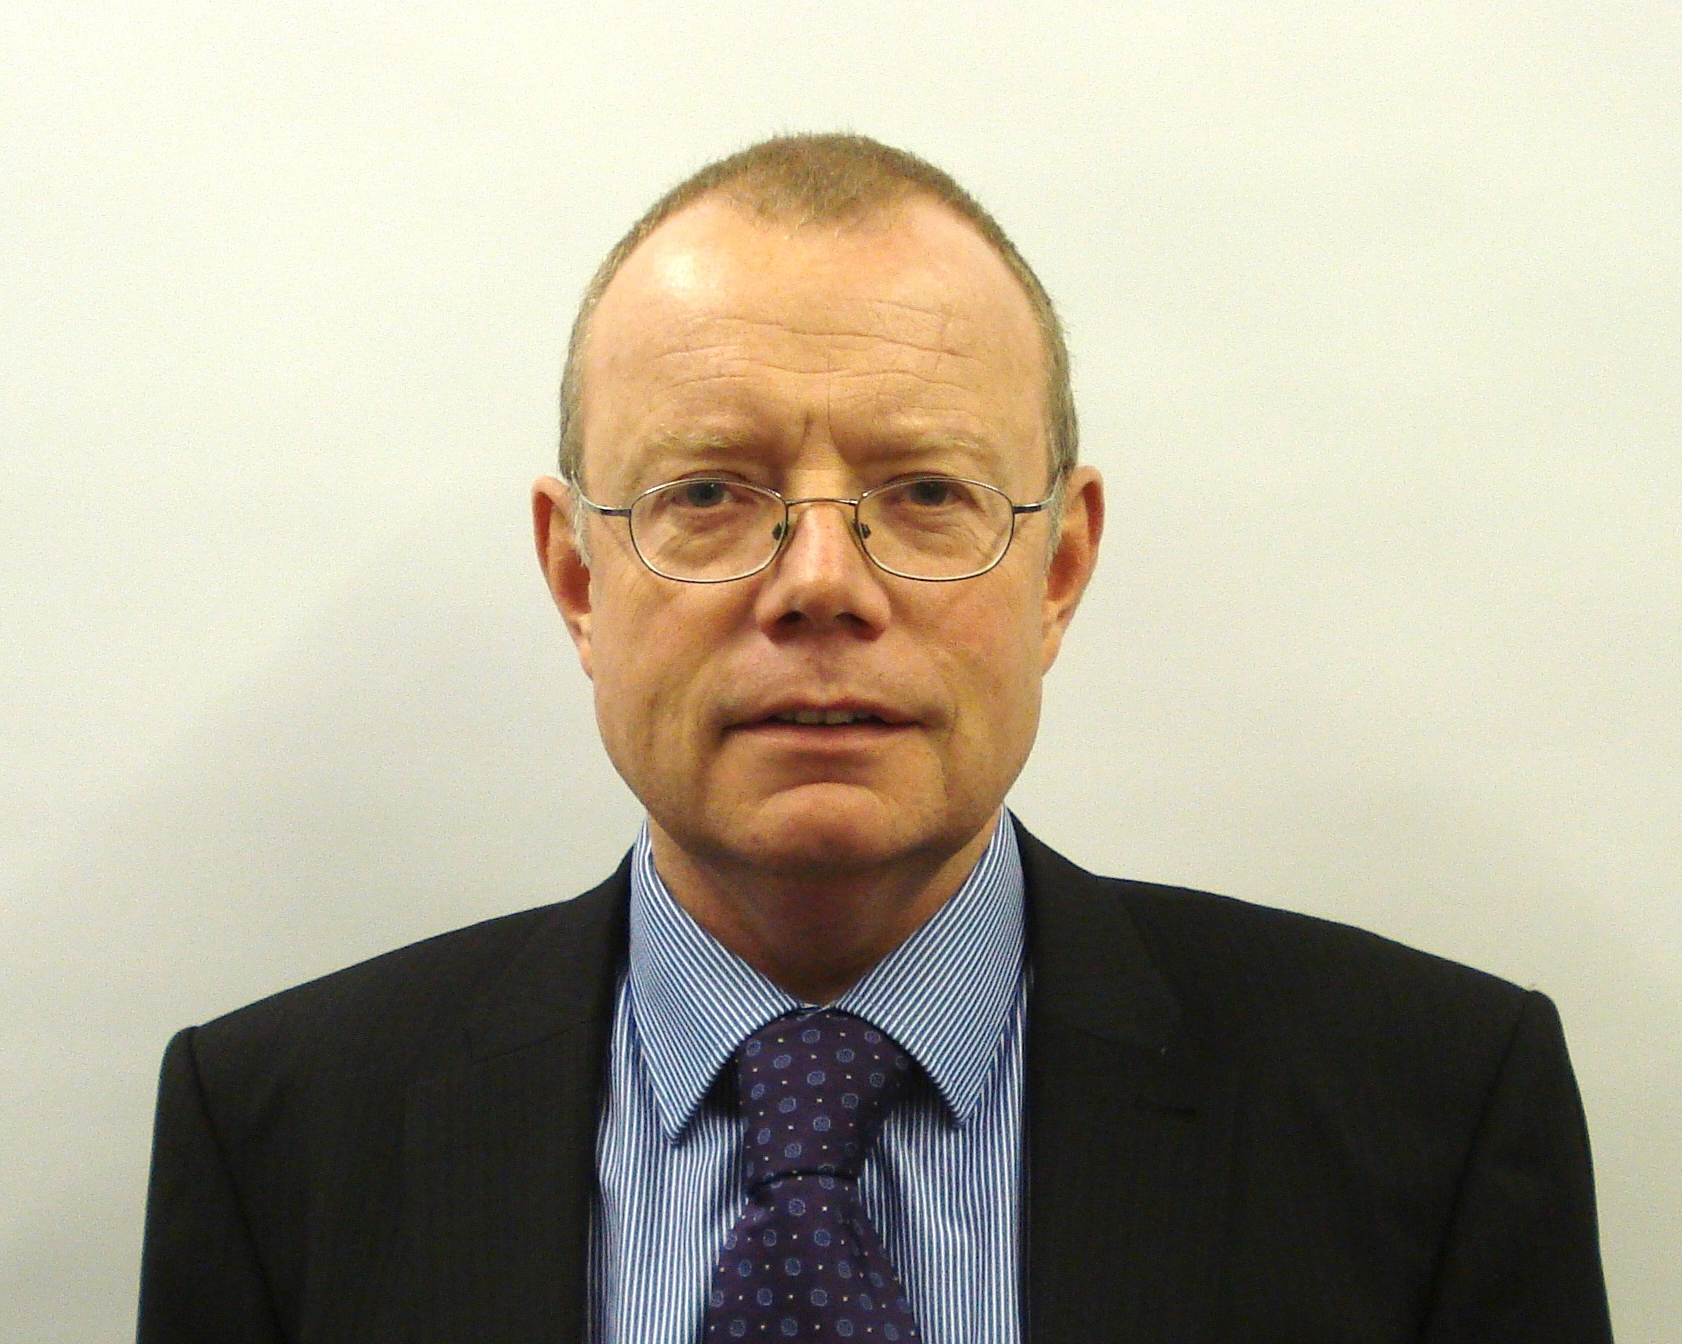 Richmond School headteacher Ian Robertson